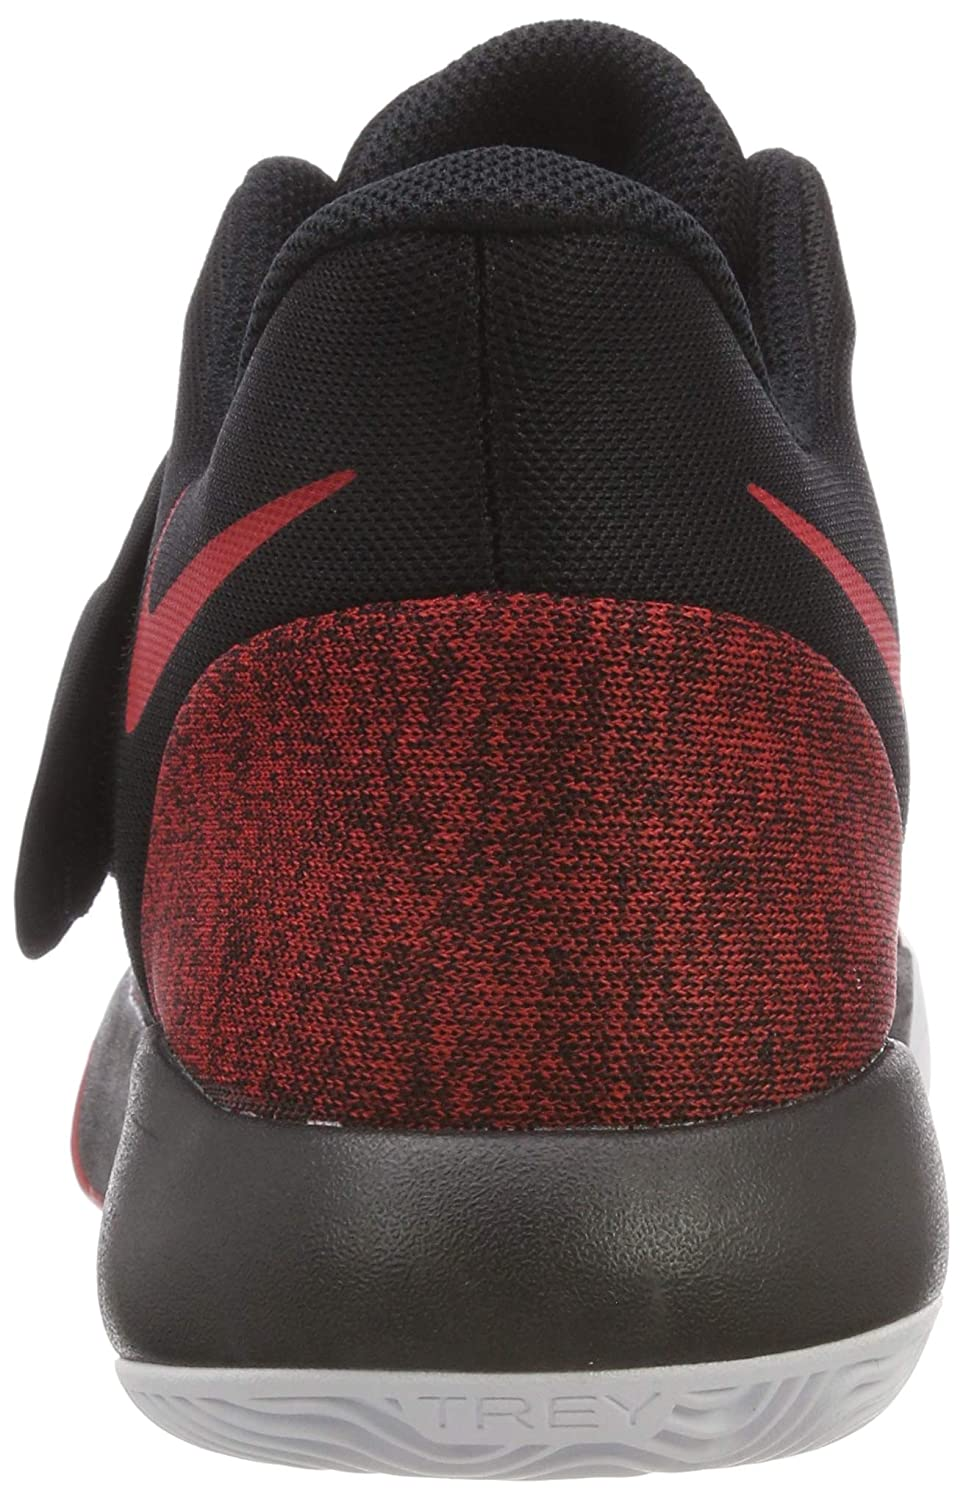 3229519ffc4e85 Nike Men s KD Trey 5 VI Black University Red-White Basketball Shoes (AA7067- 006) (UK-10 (US-11))  Buy Online at Low Prices in India - Amazon.in